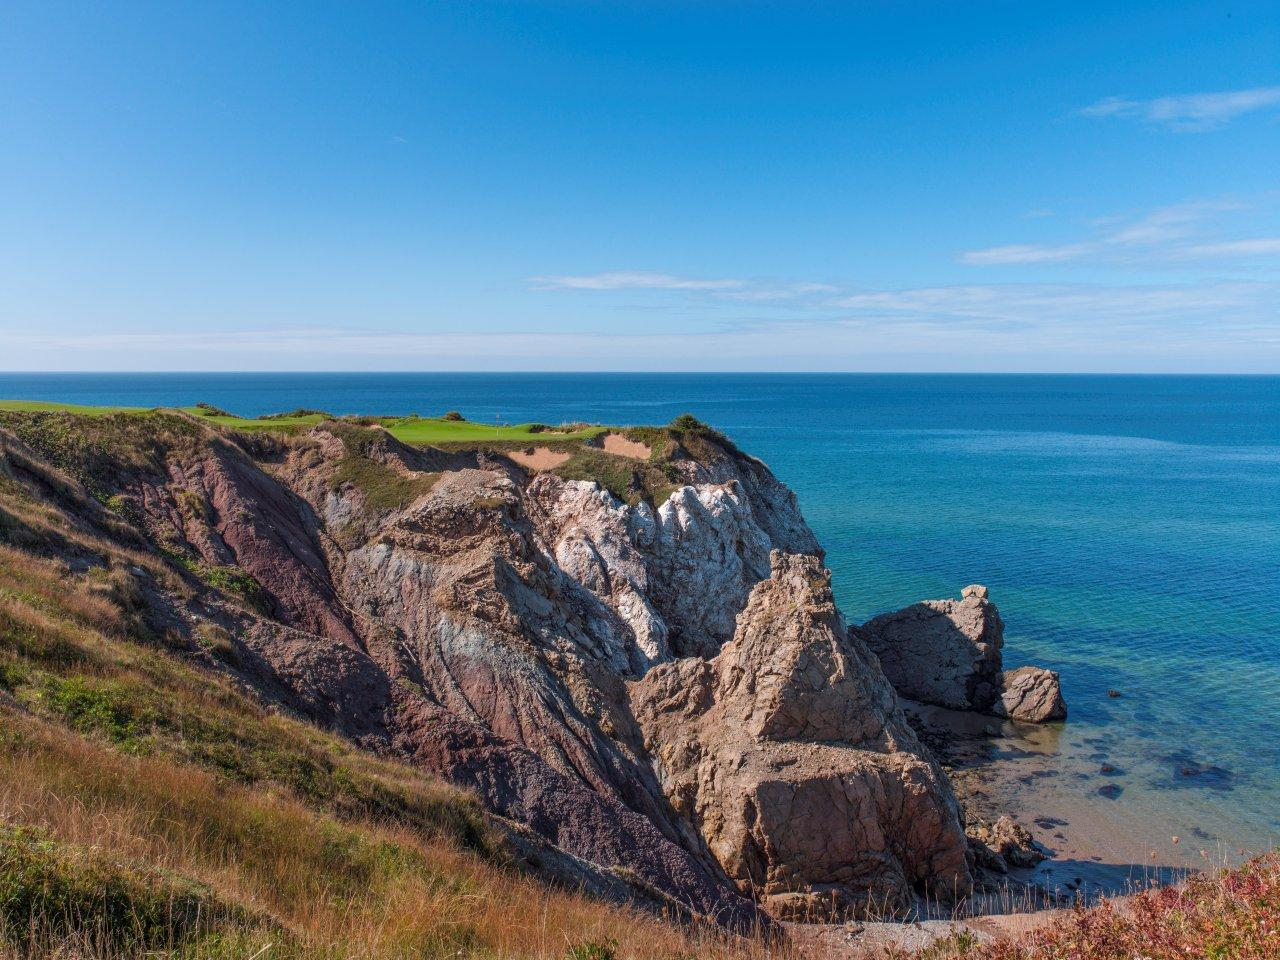 Cabot Cliffs Golf Course opens to the public